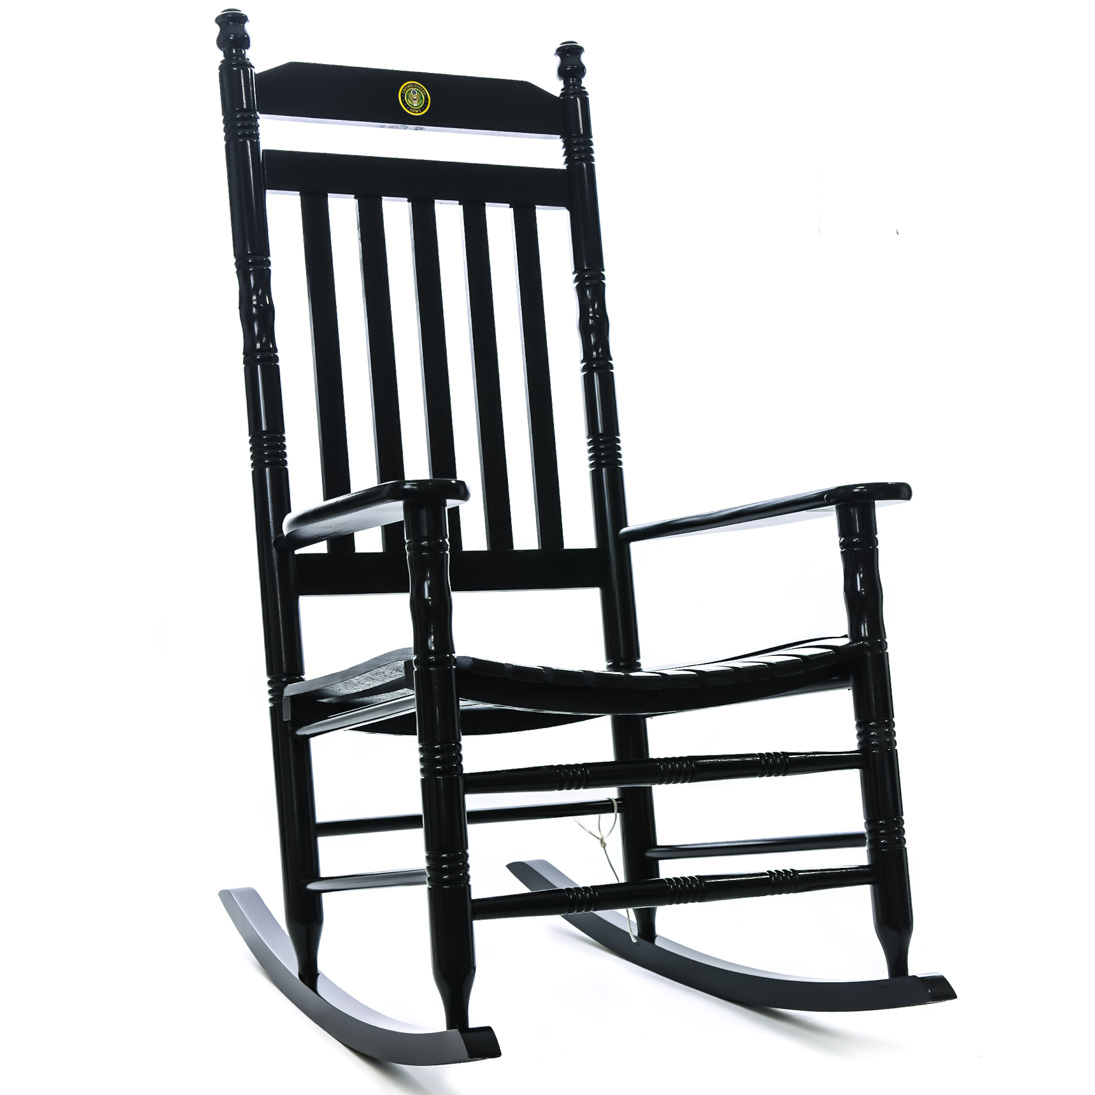 Rocking Chair U S Army Fully Assembled Rocking Chair